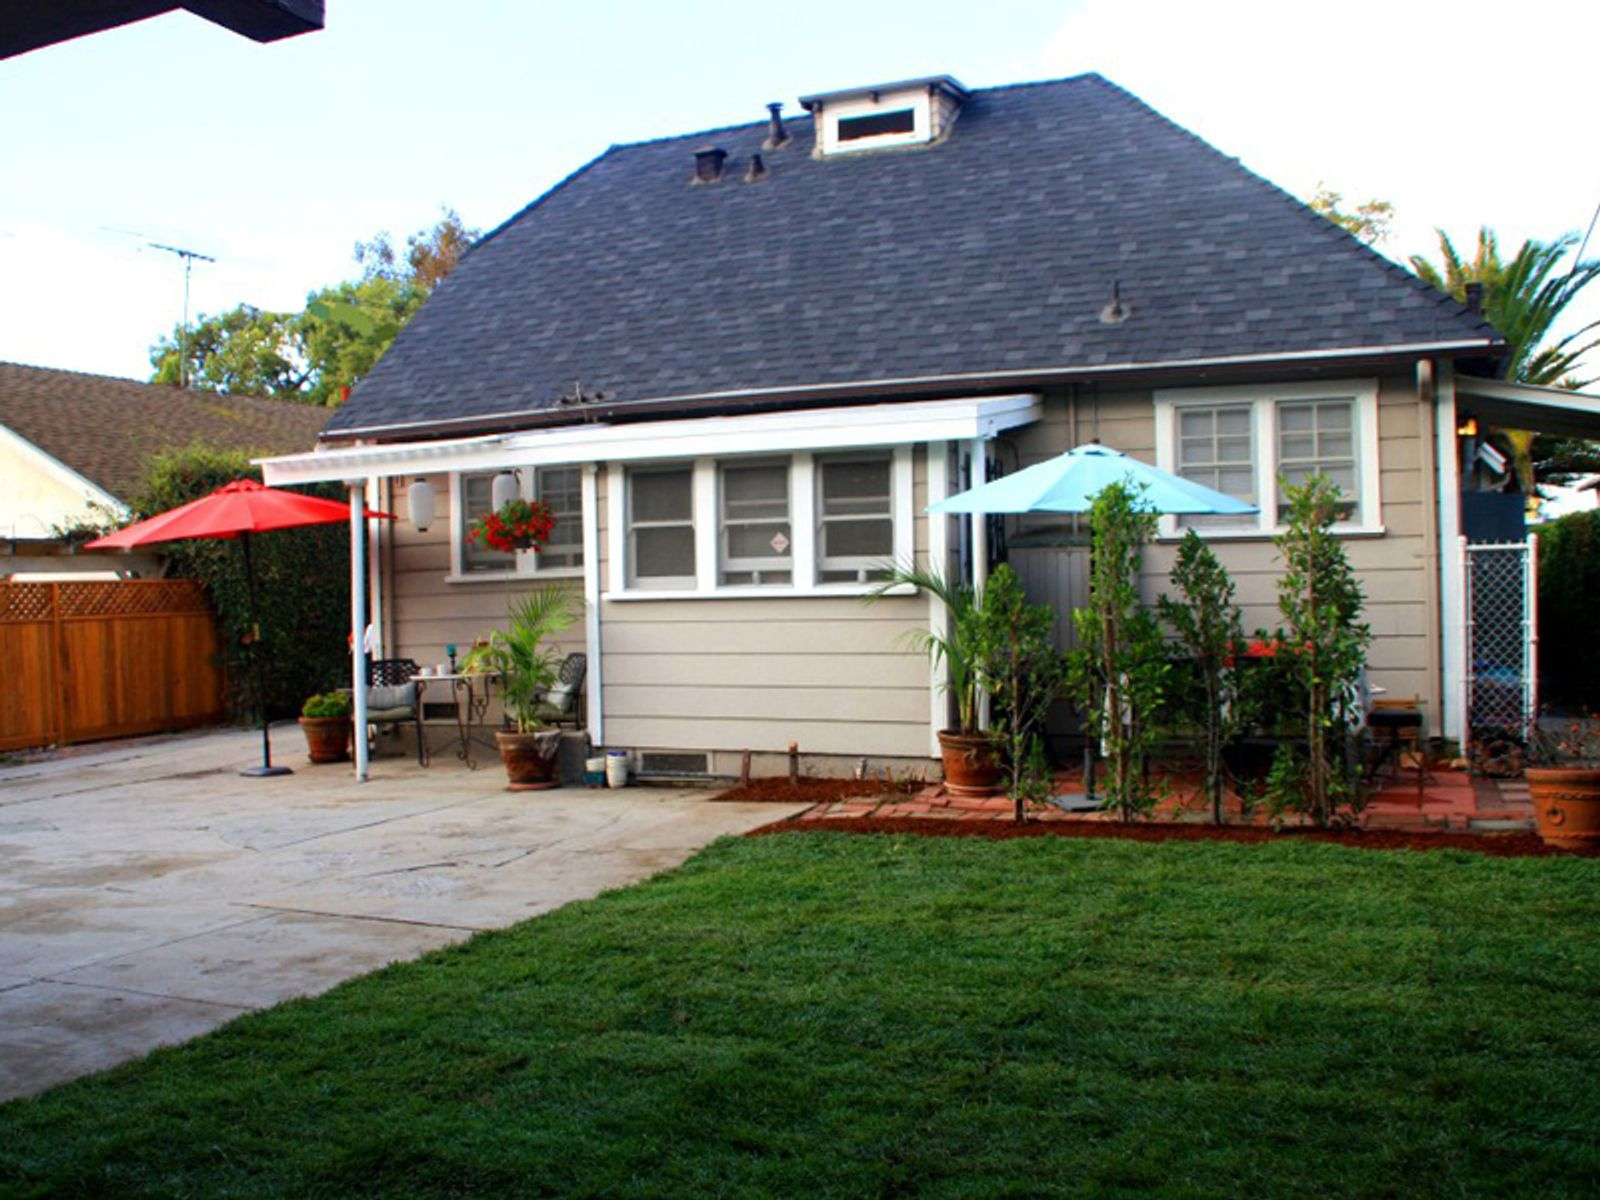 Rare and Charming Triplex, Los Angeles CA Multiple Units - Los Angeles Real Estate